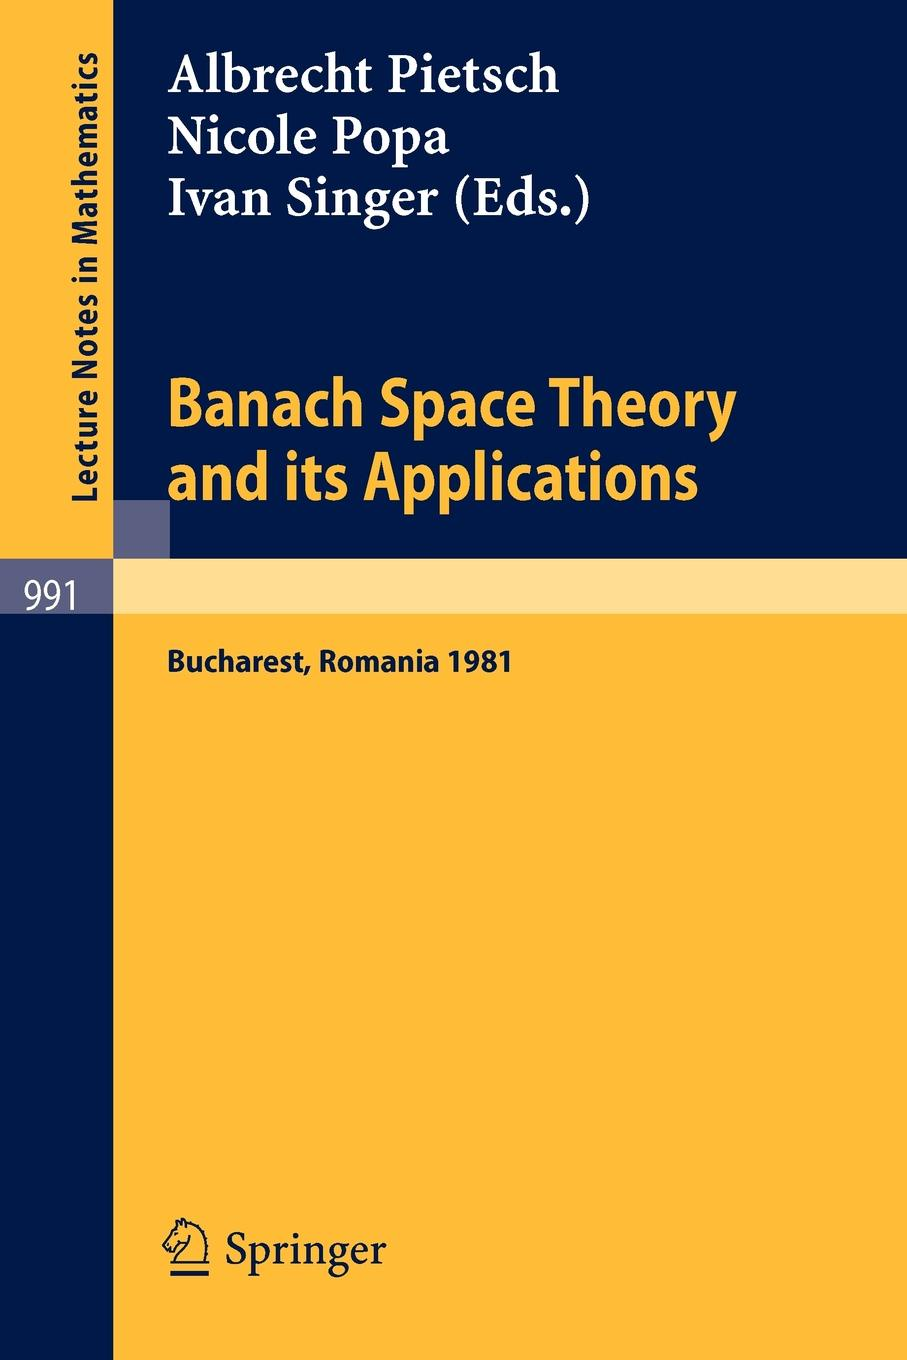 Banach Space Theory and its Applications. Proceedings of the First Romanian GDR Seminar Held at Bucharest, Romania, August 31 - September 6, 1981